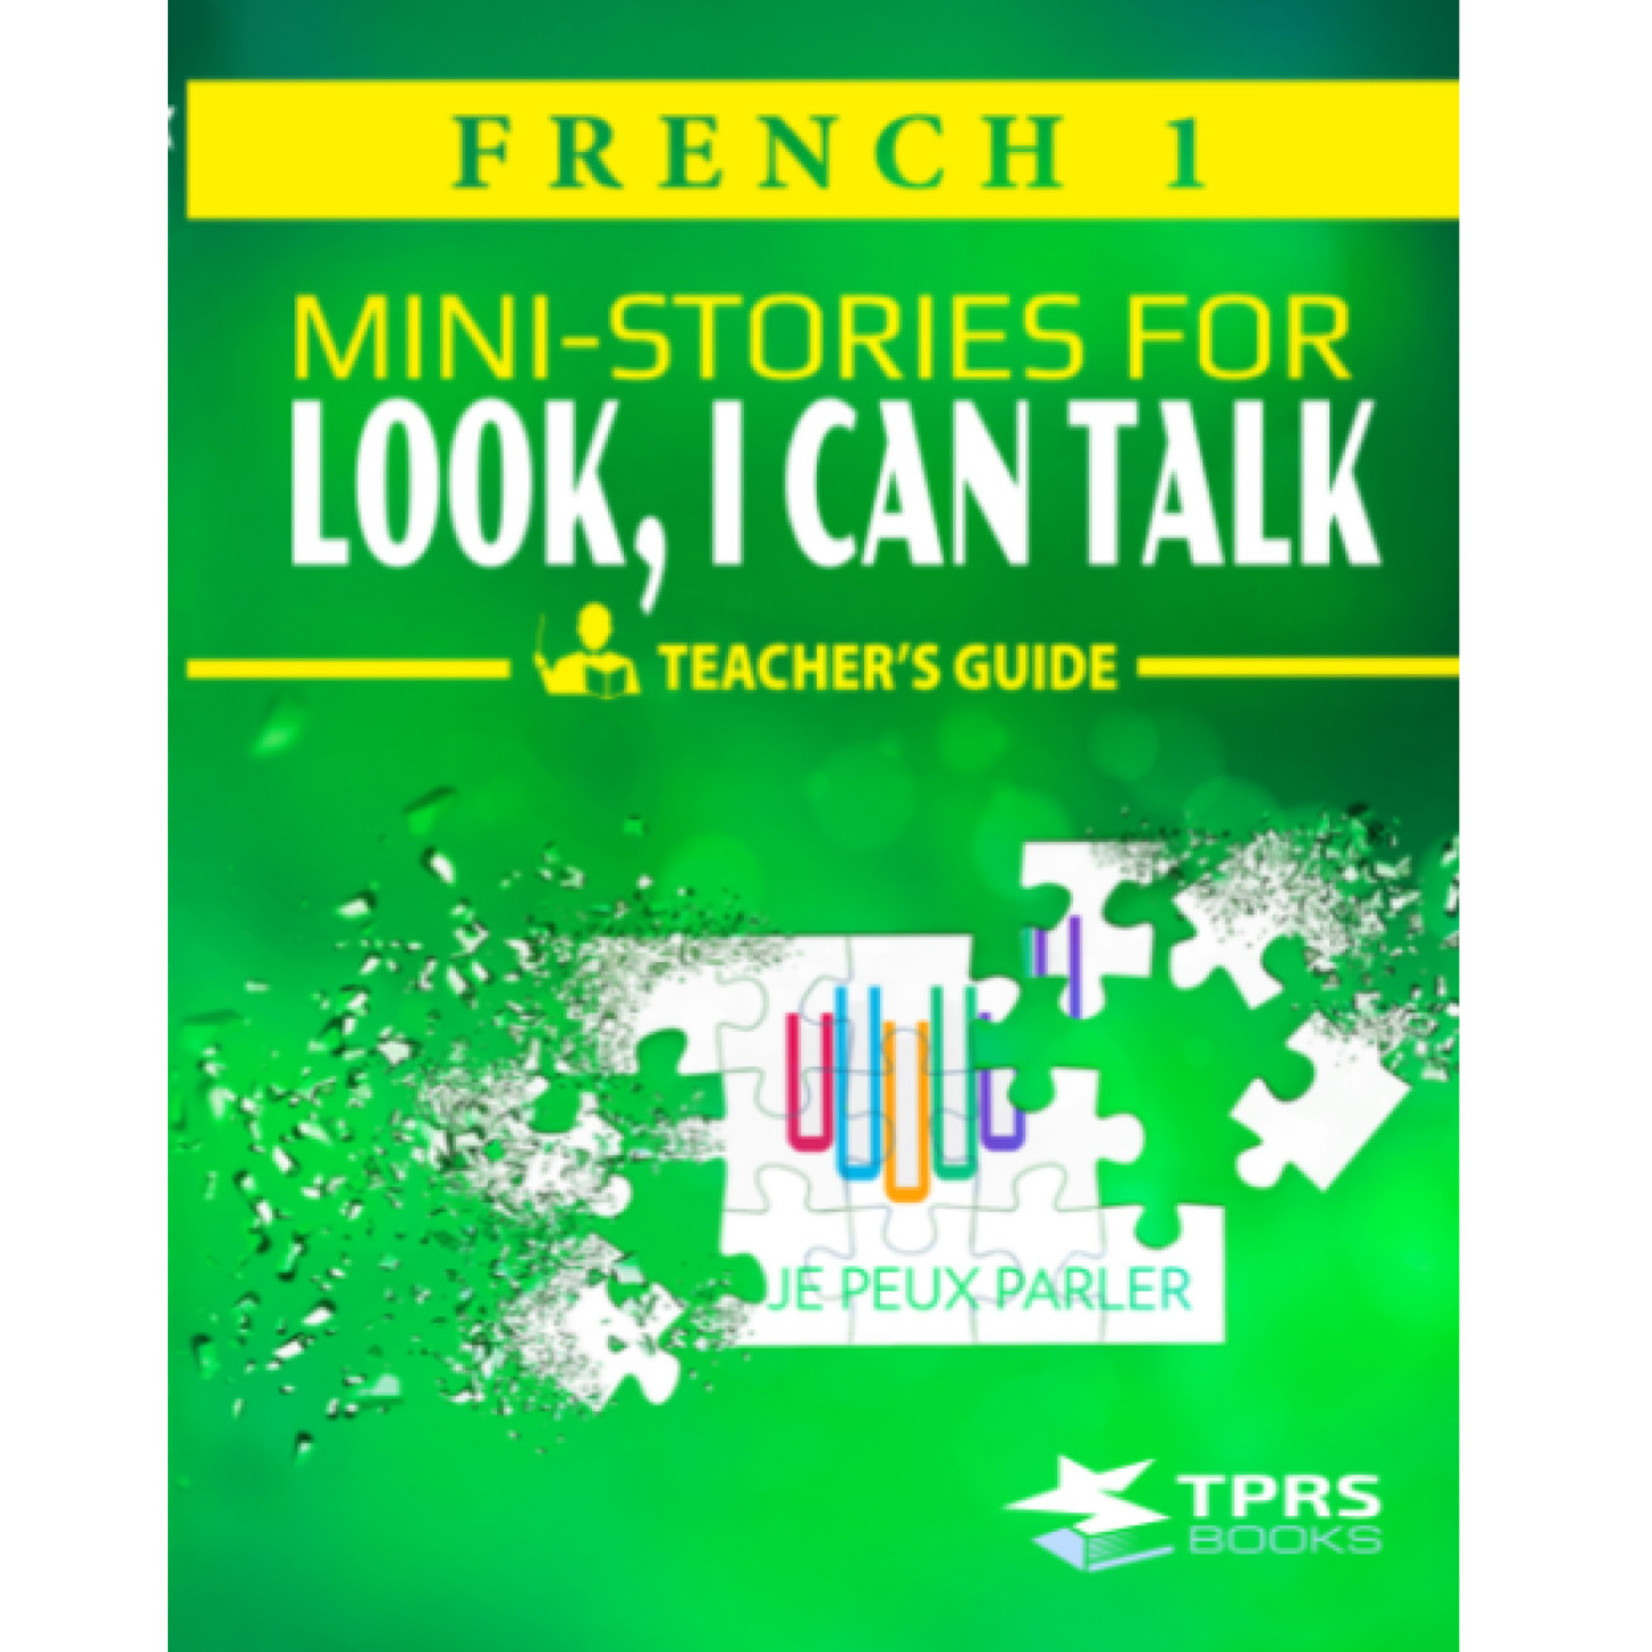 TPRS Books French 1 - Look, I can talk! Teacher's Guide